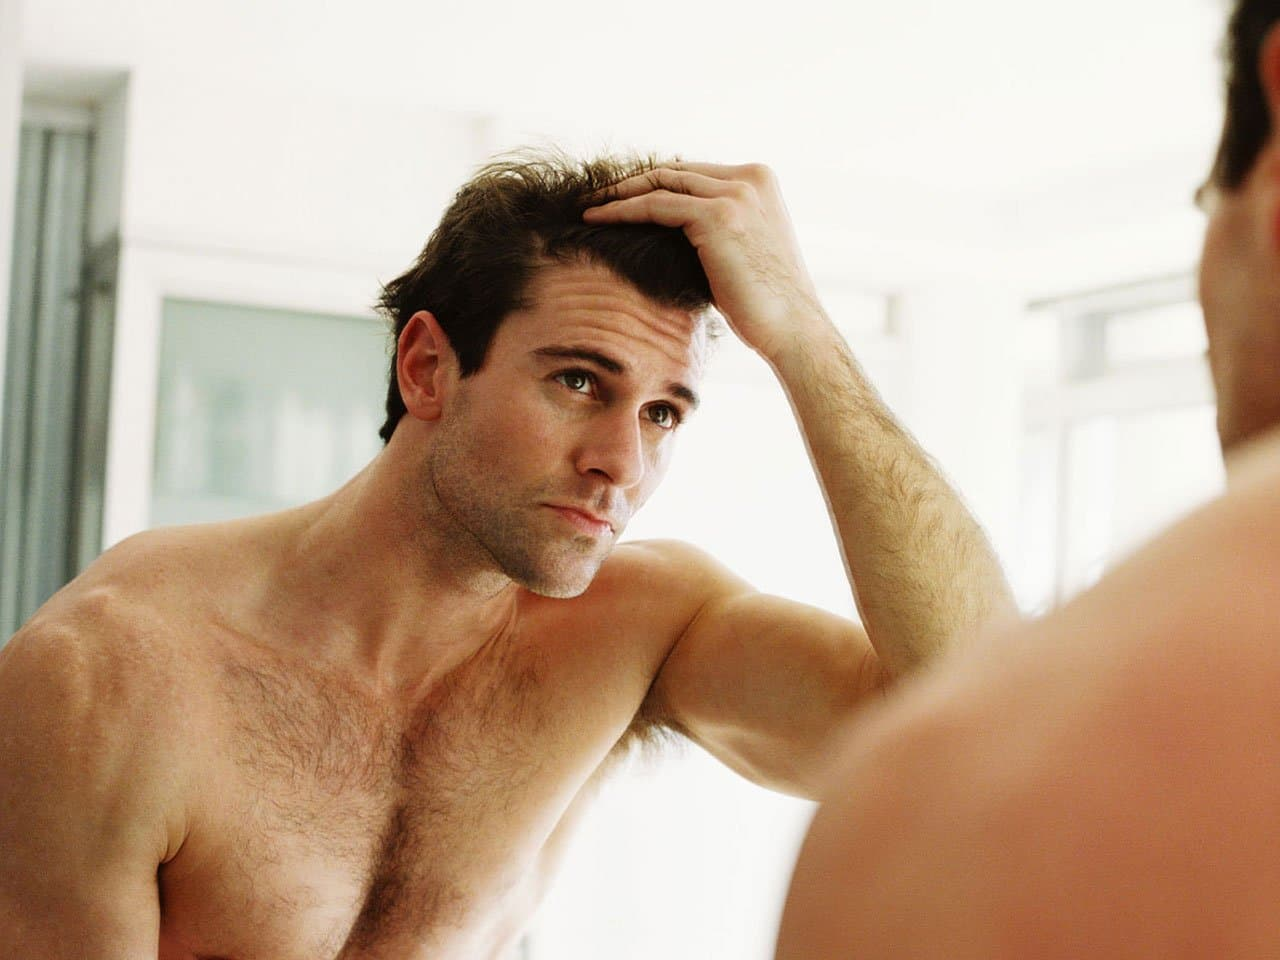 Man inspecting hairline in mirror